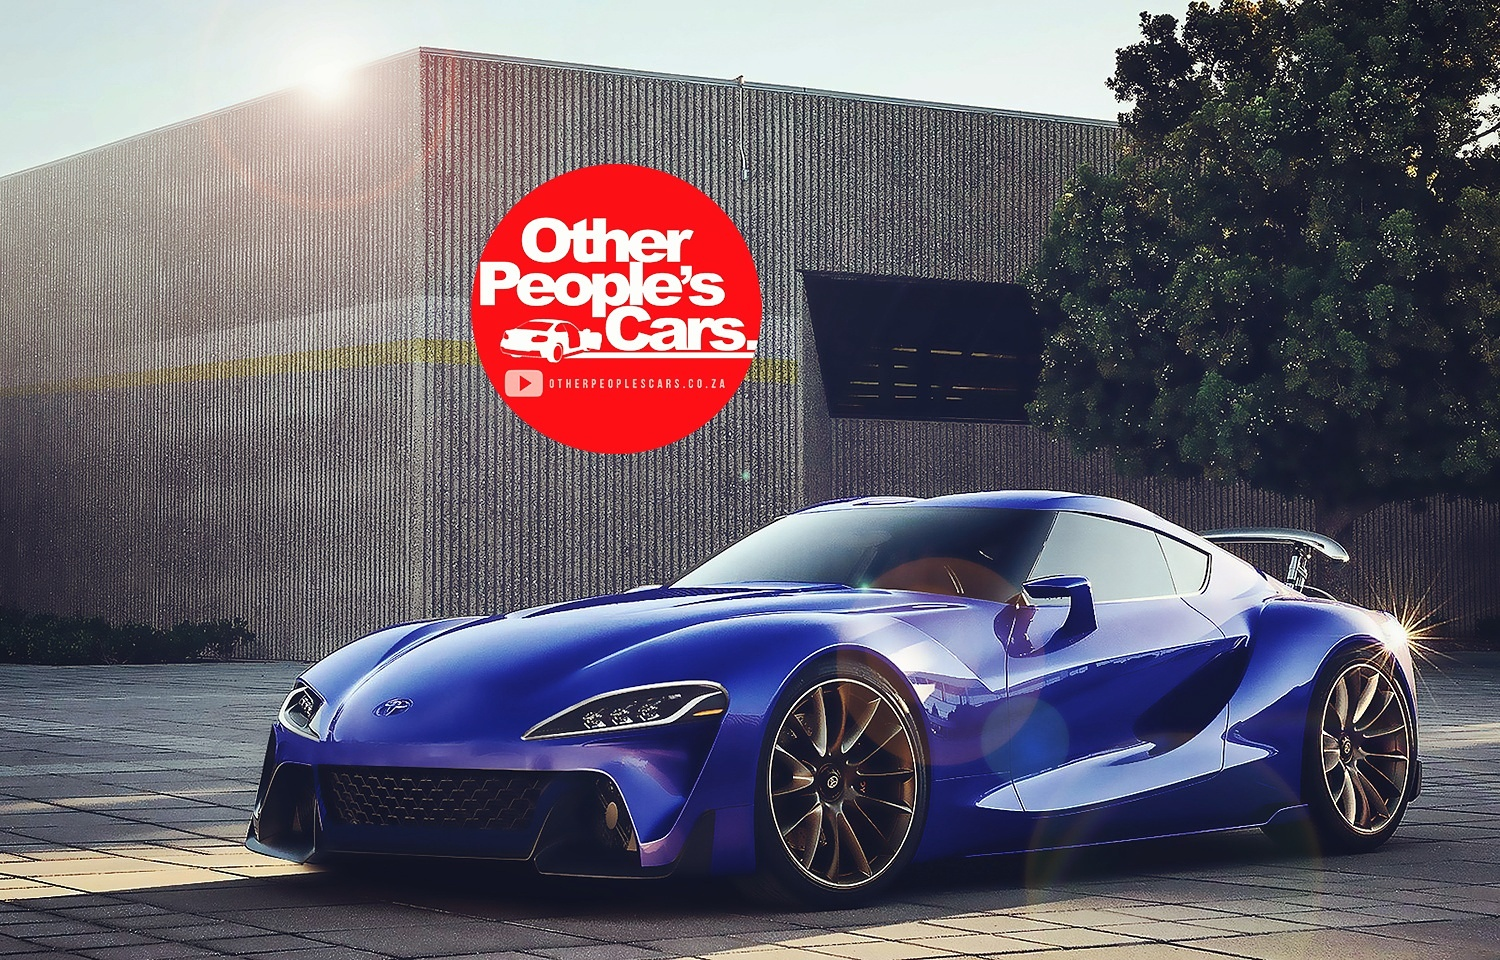 Is This The New Toyota Supra Other People S Cars